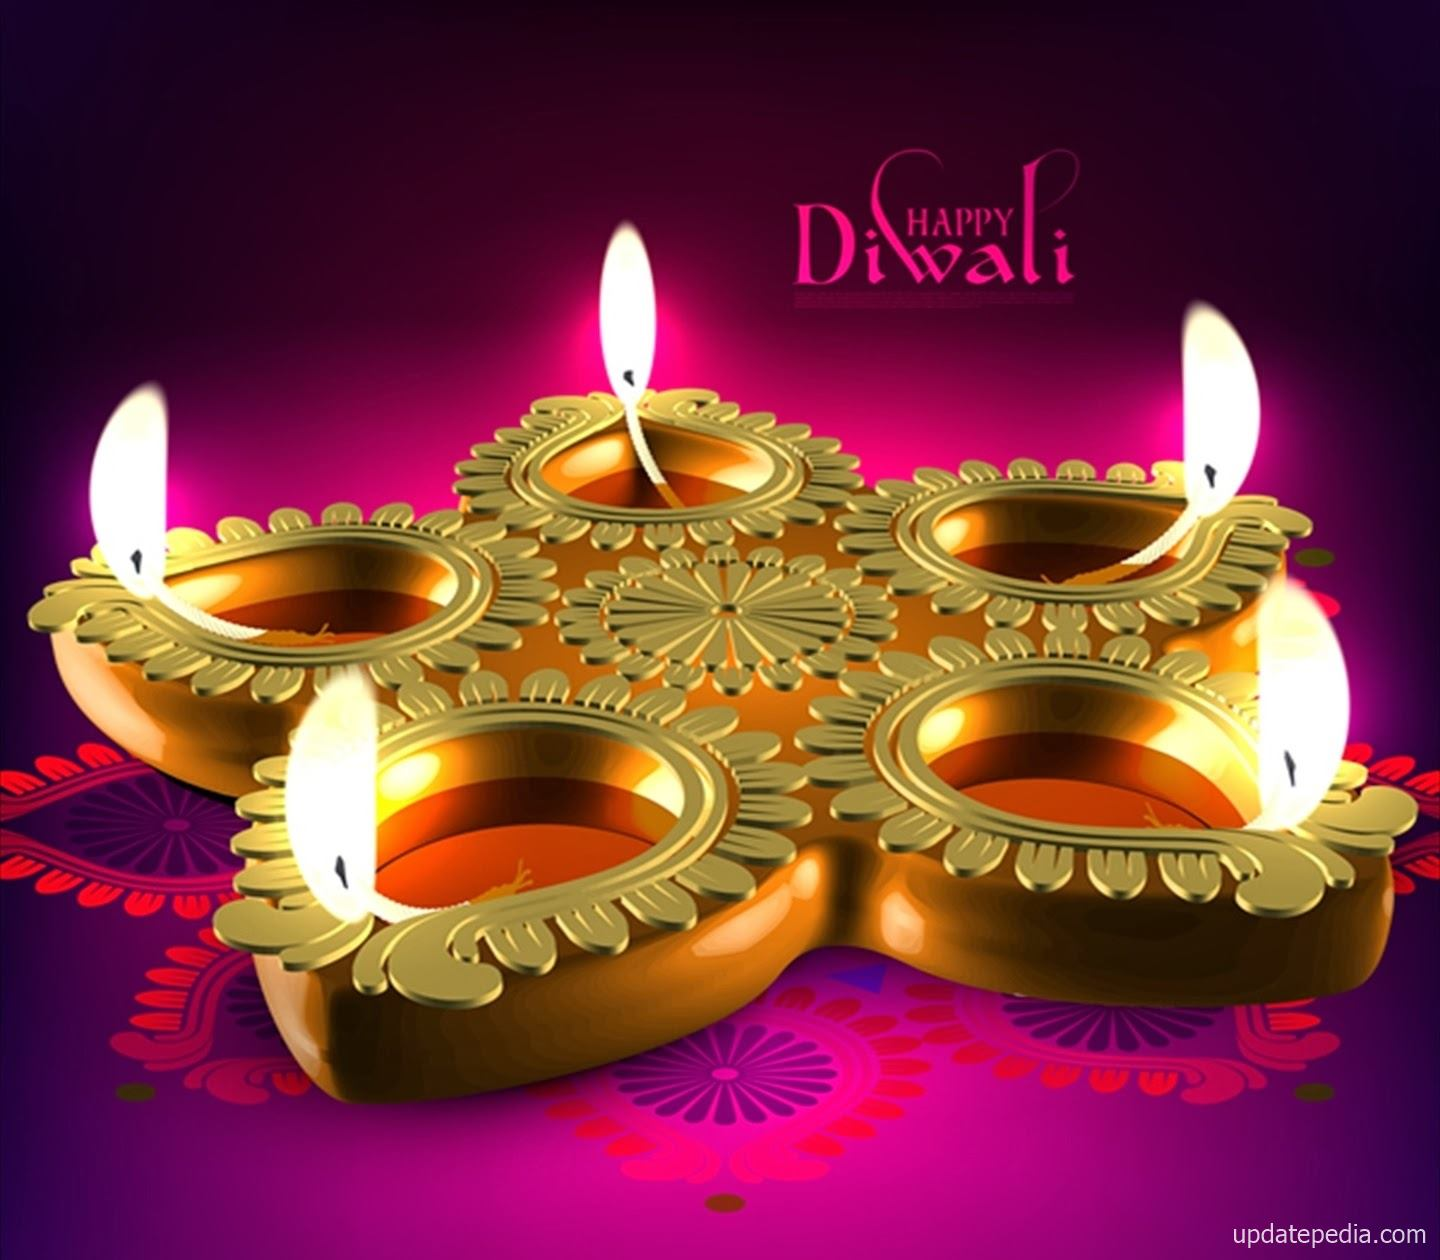 101 happy diwali greeting images pictures wallpaper diwali pictures diwali greetings diwali images diwali wallpaper diwali cards happy m4hsunfo Choice Image